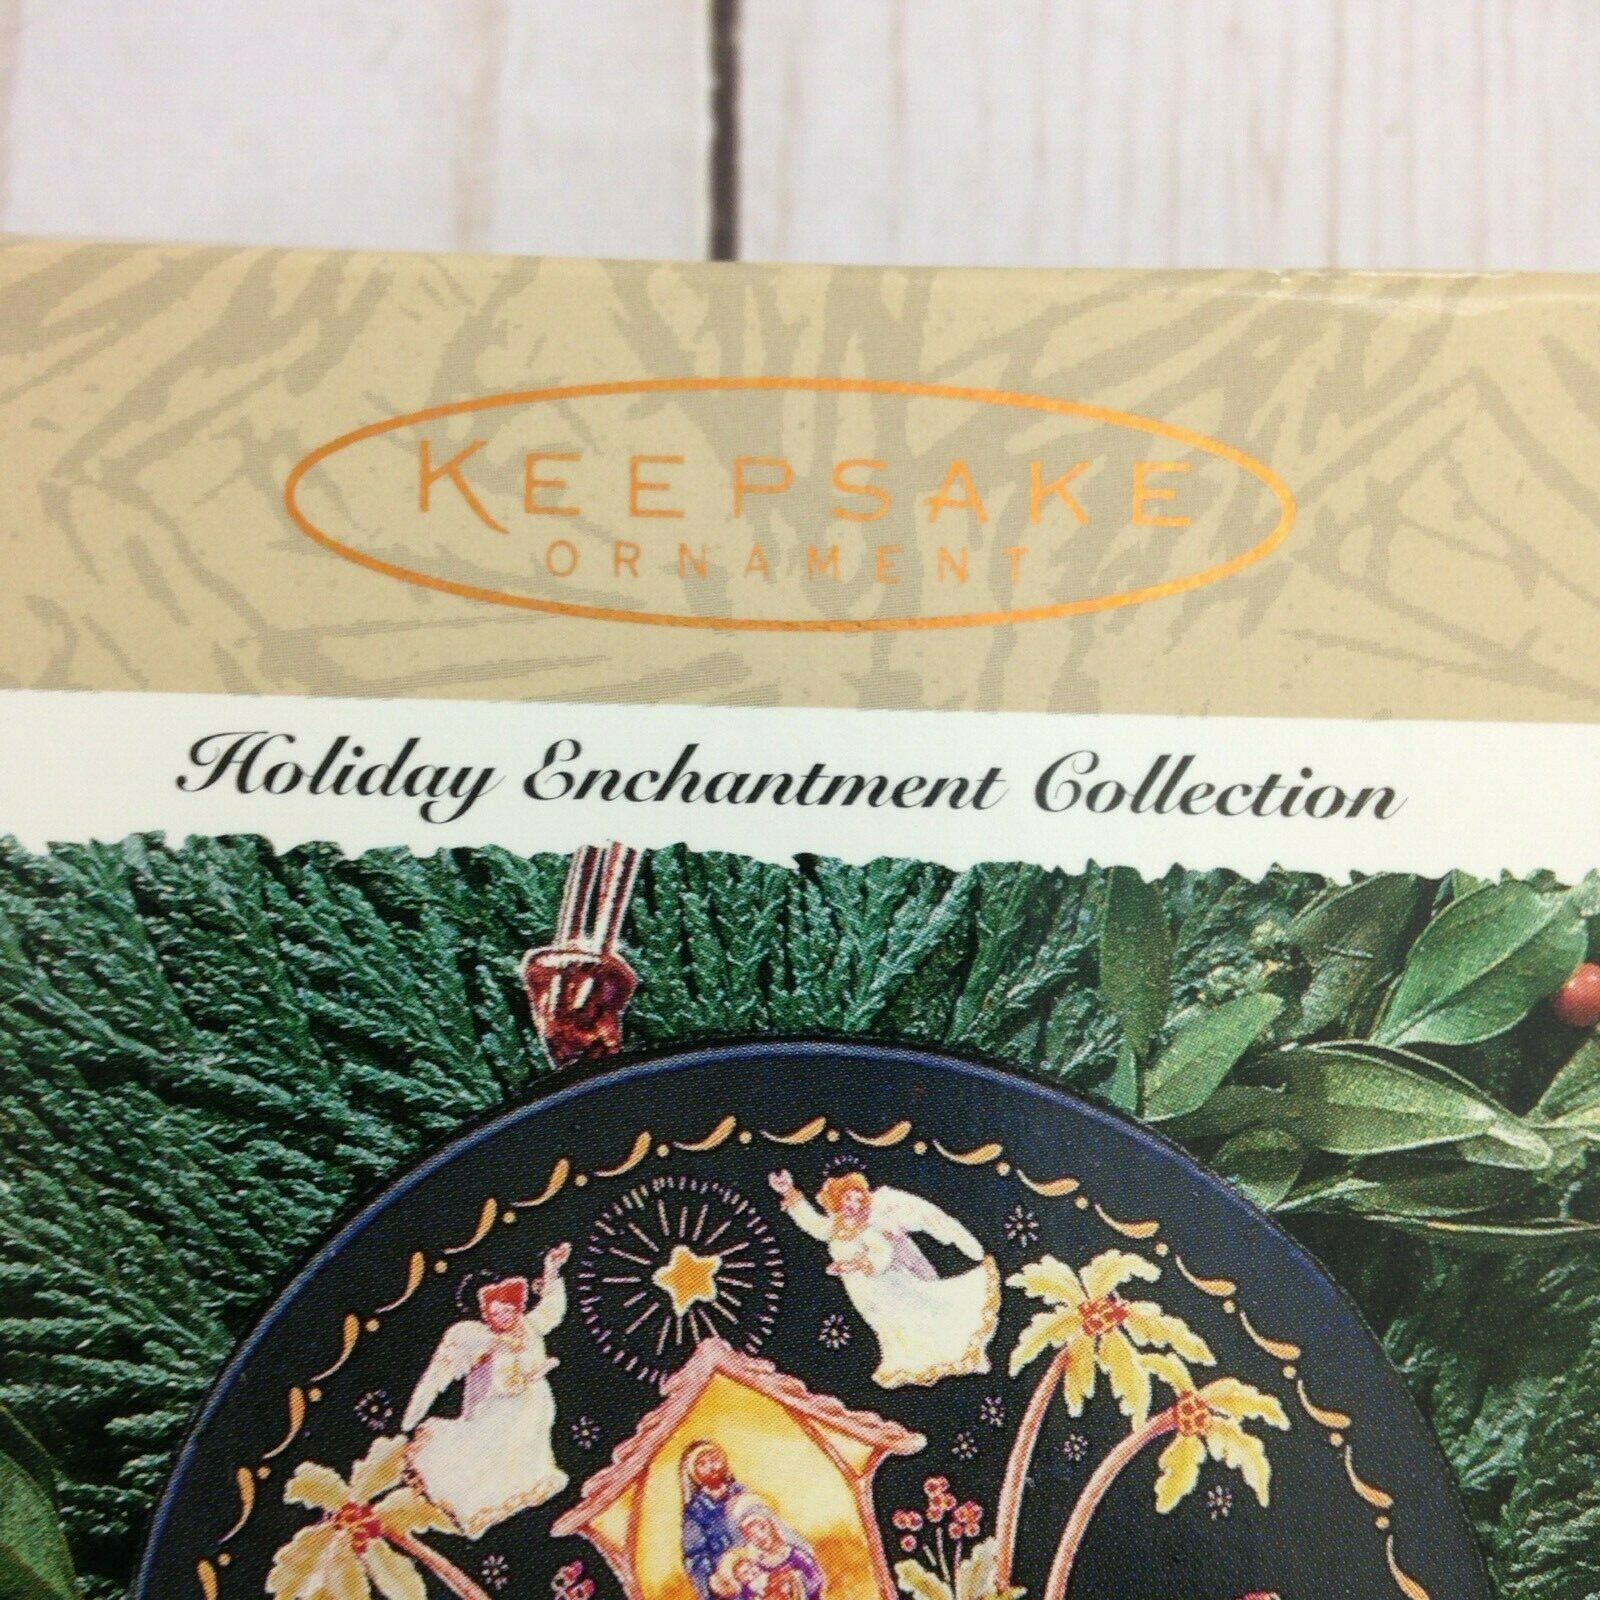 Keepsake Ornament Holiday Enchantment Collection Following The Star Showcase image 3